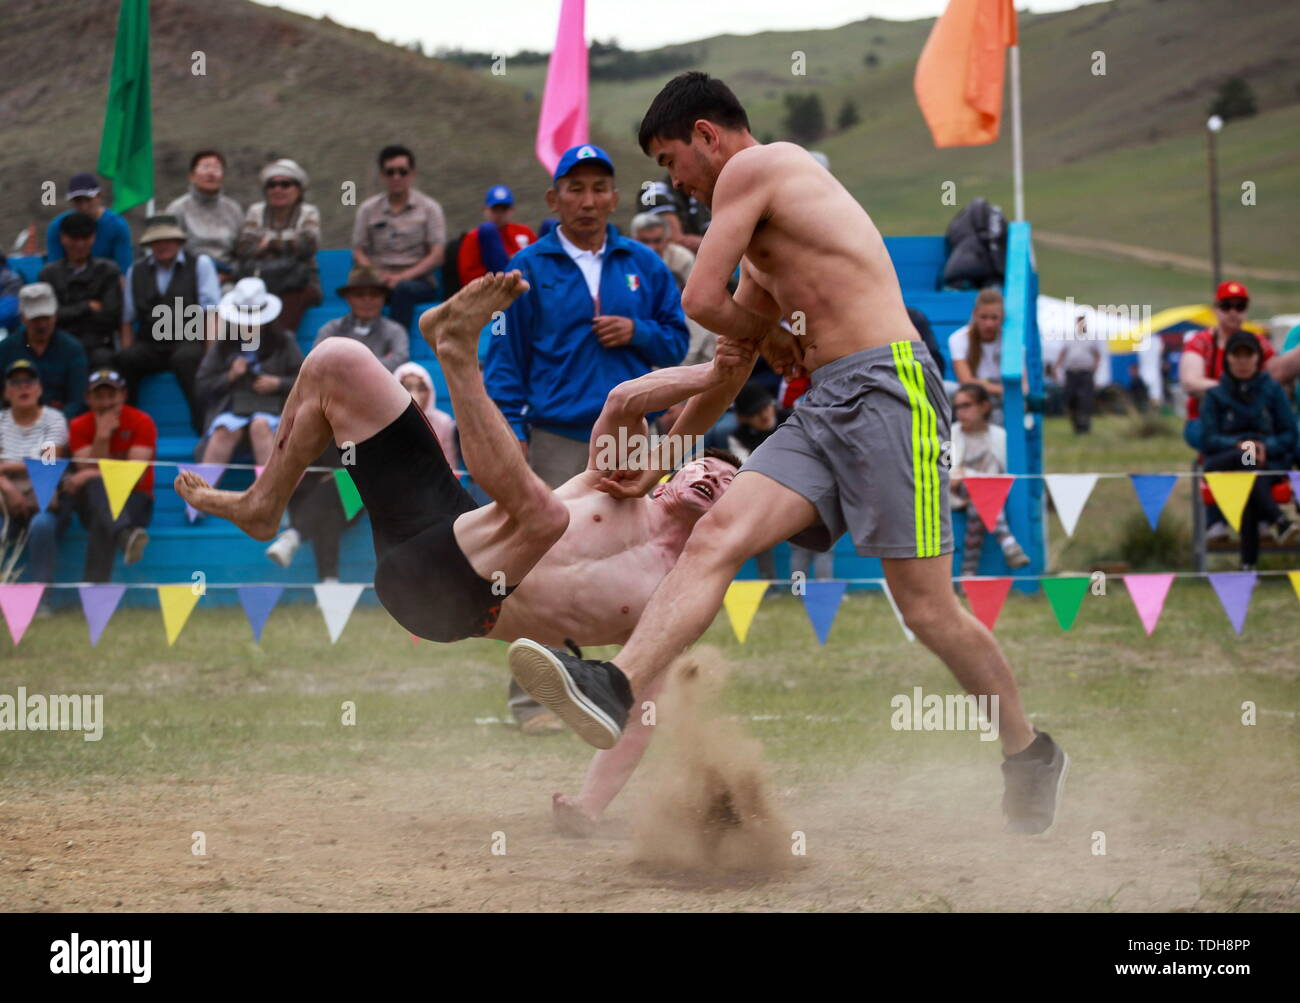 Irkutsk, Russia. 15th June, 2019. IRKUTSK REGION, RUSSIA - JUNE 15, 2019: Buryat wrestlers perform at the 7th Yordynian Games - Eurasian Peoples' Games, an ethnic and cultural festival of the local indigenous peoples, held at the foot of the sacred Mount Yord near Lake Baikal. Kirill Shipitsin/TASS Credit: ITAR-TASS News Agency/Alamy Live News Stock Photo